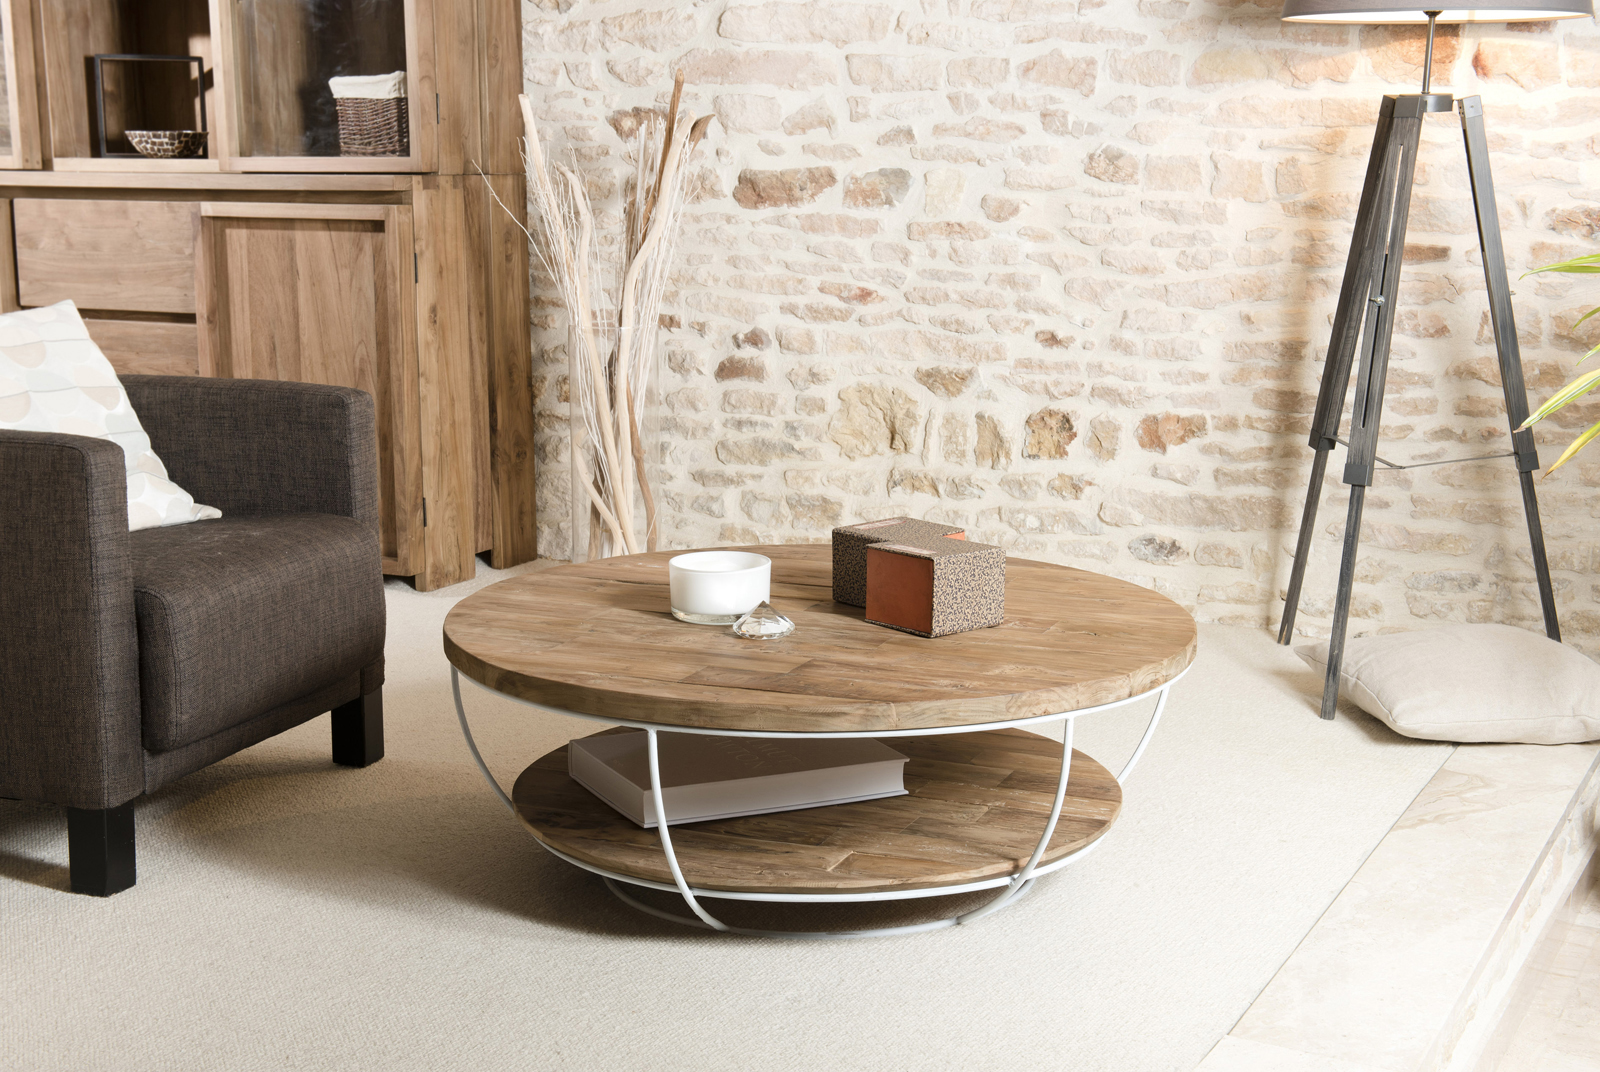 Table Basse Ronde Teck Recycle Structure Filaire Blanche 2 Plateaux